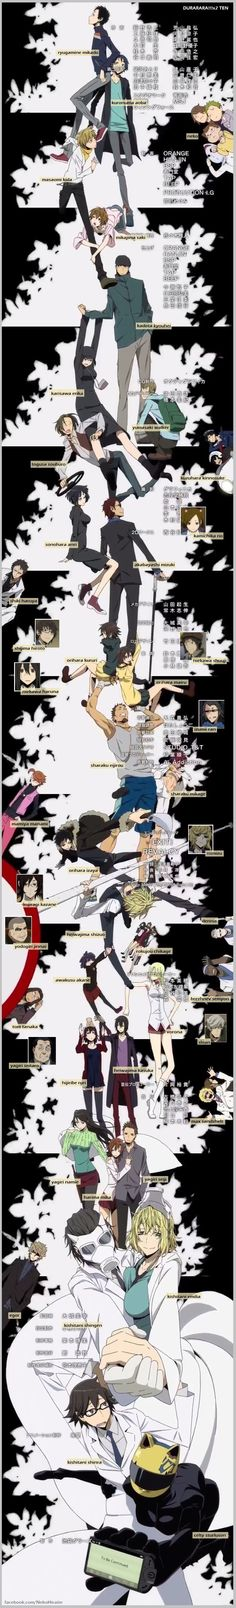 Durarara!!!x2 Ten | Characters with names